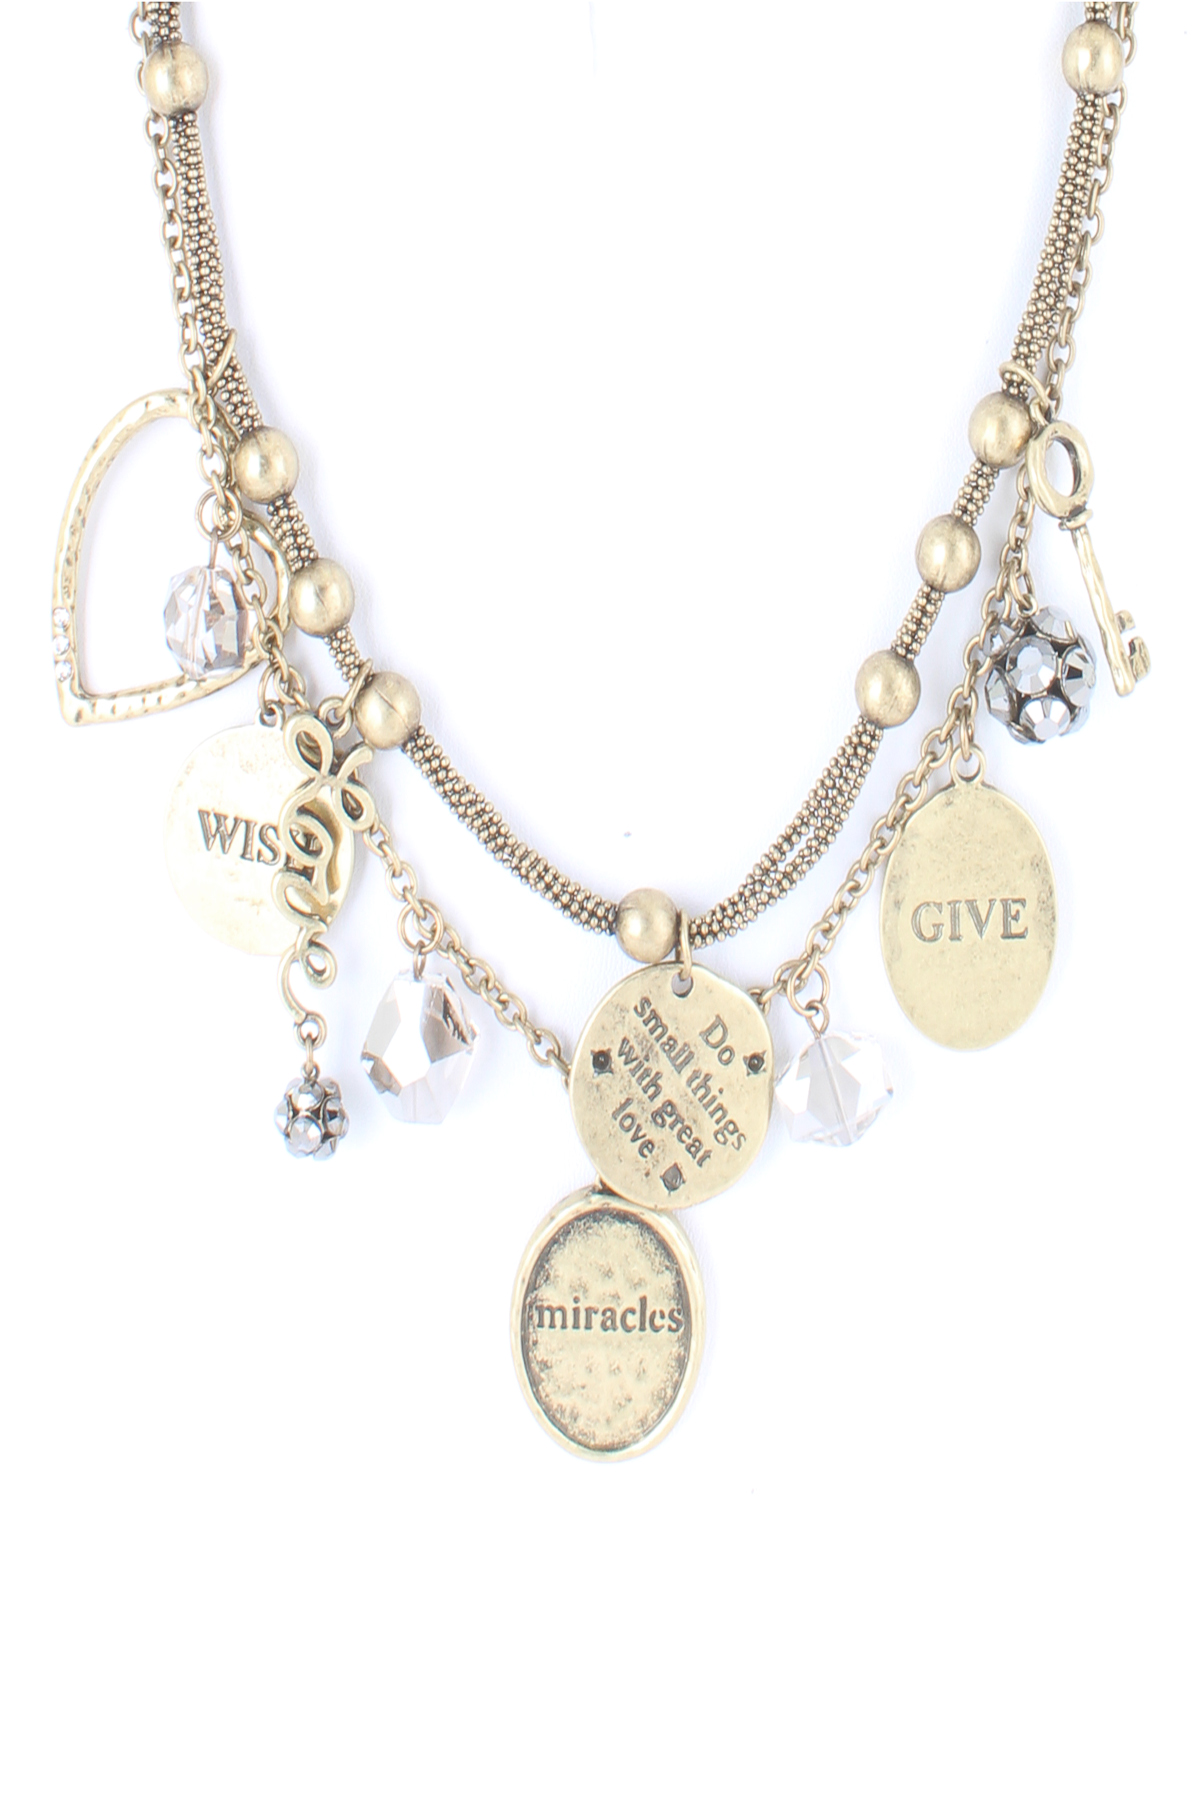 multiple charms necklace